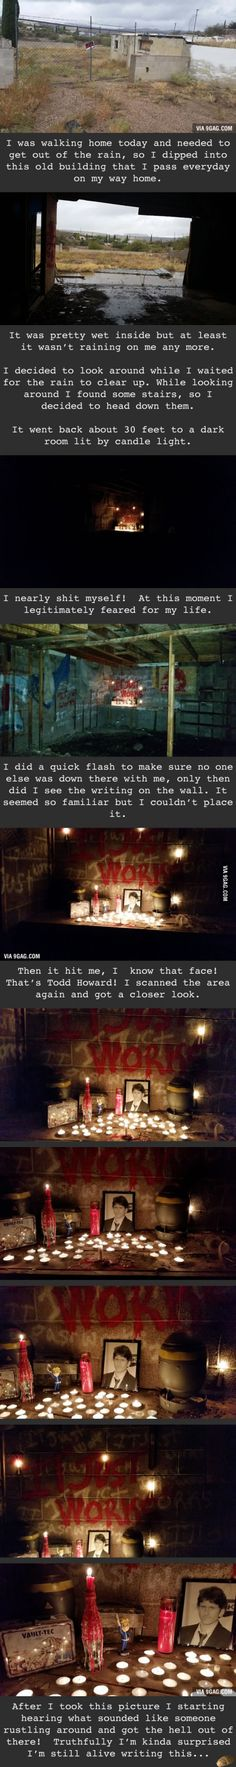 "Some dude found a ""Fallout Shrine"" in an old building..."